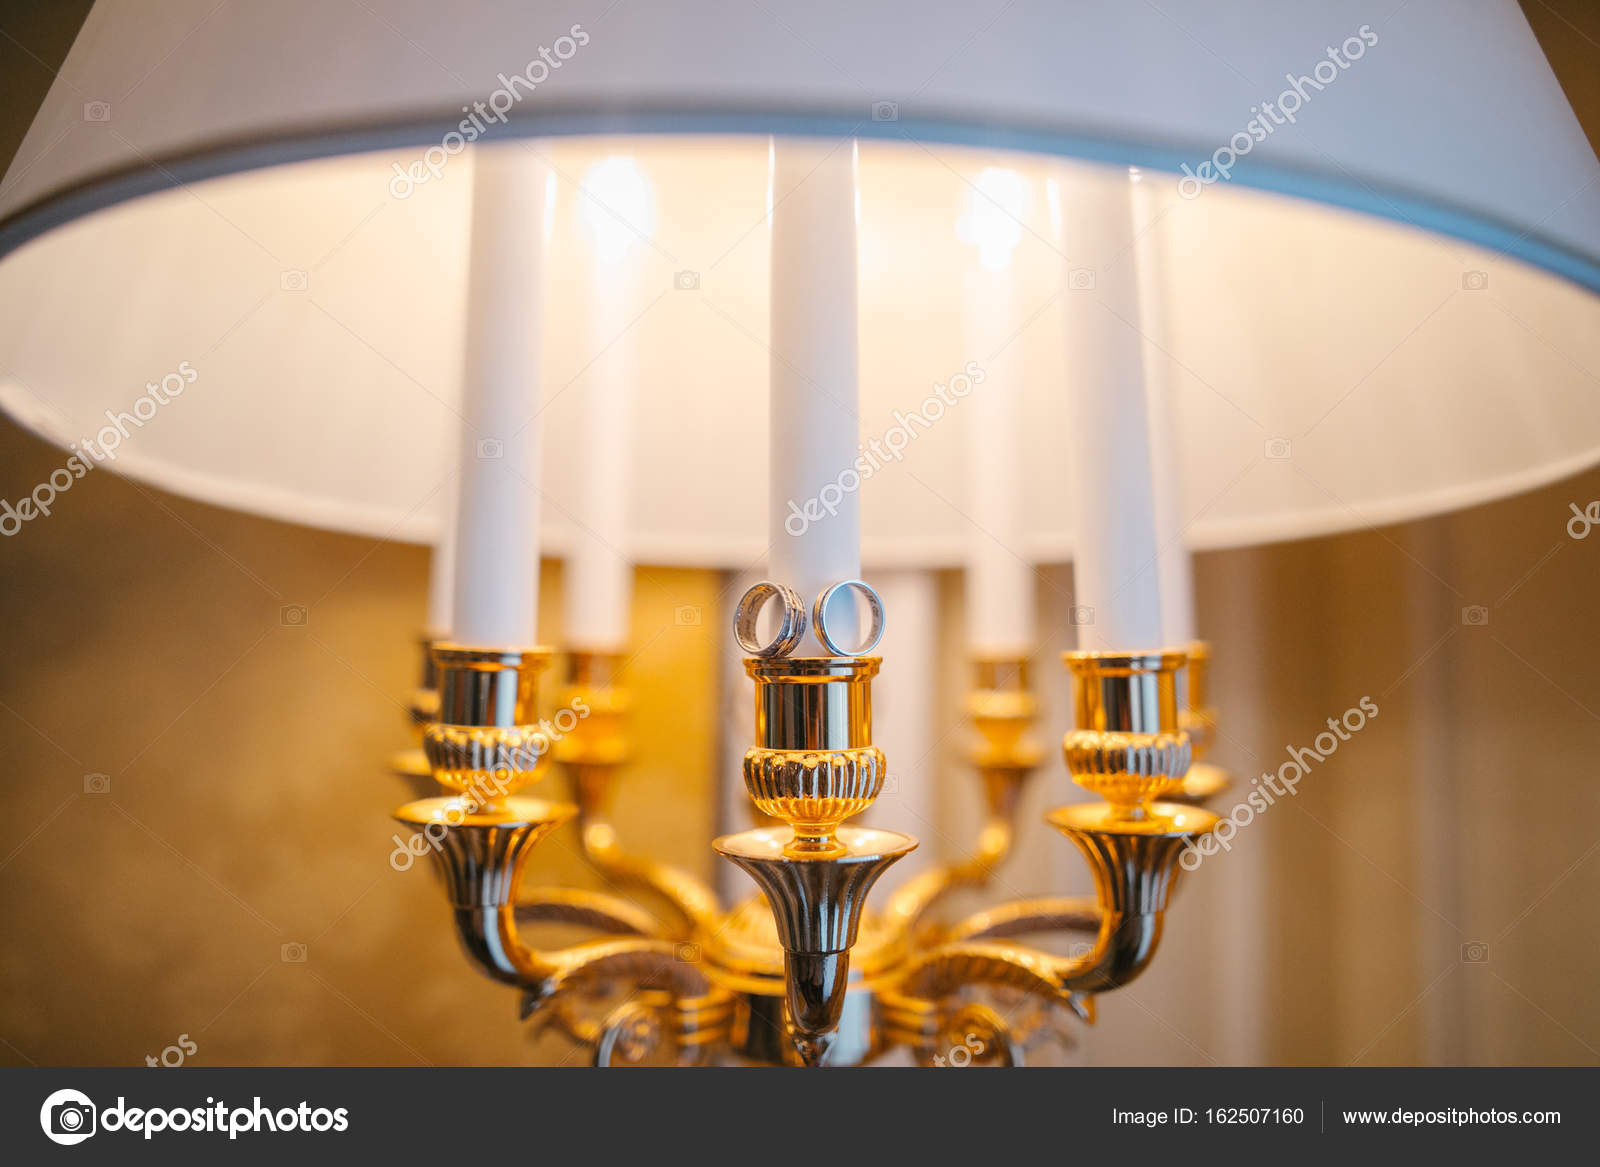 The Wedding Ring Of The Bride And Groom Lie On The Lamp In The Room U2014 Photo  By Prostooleh